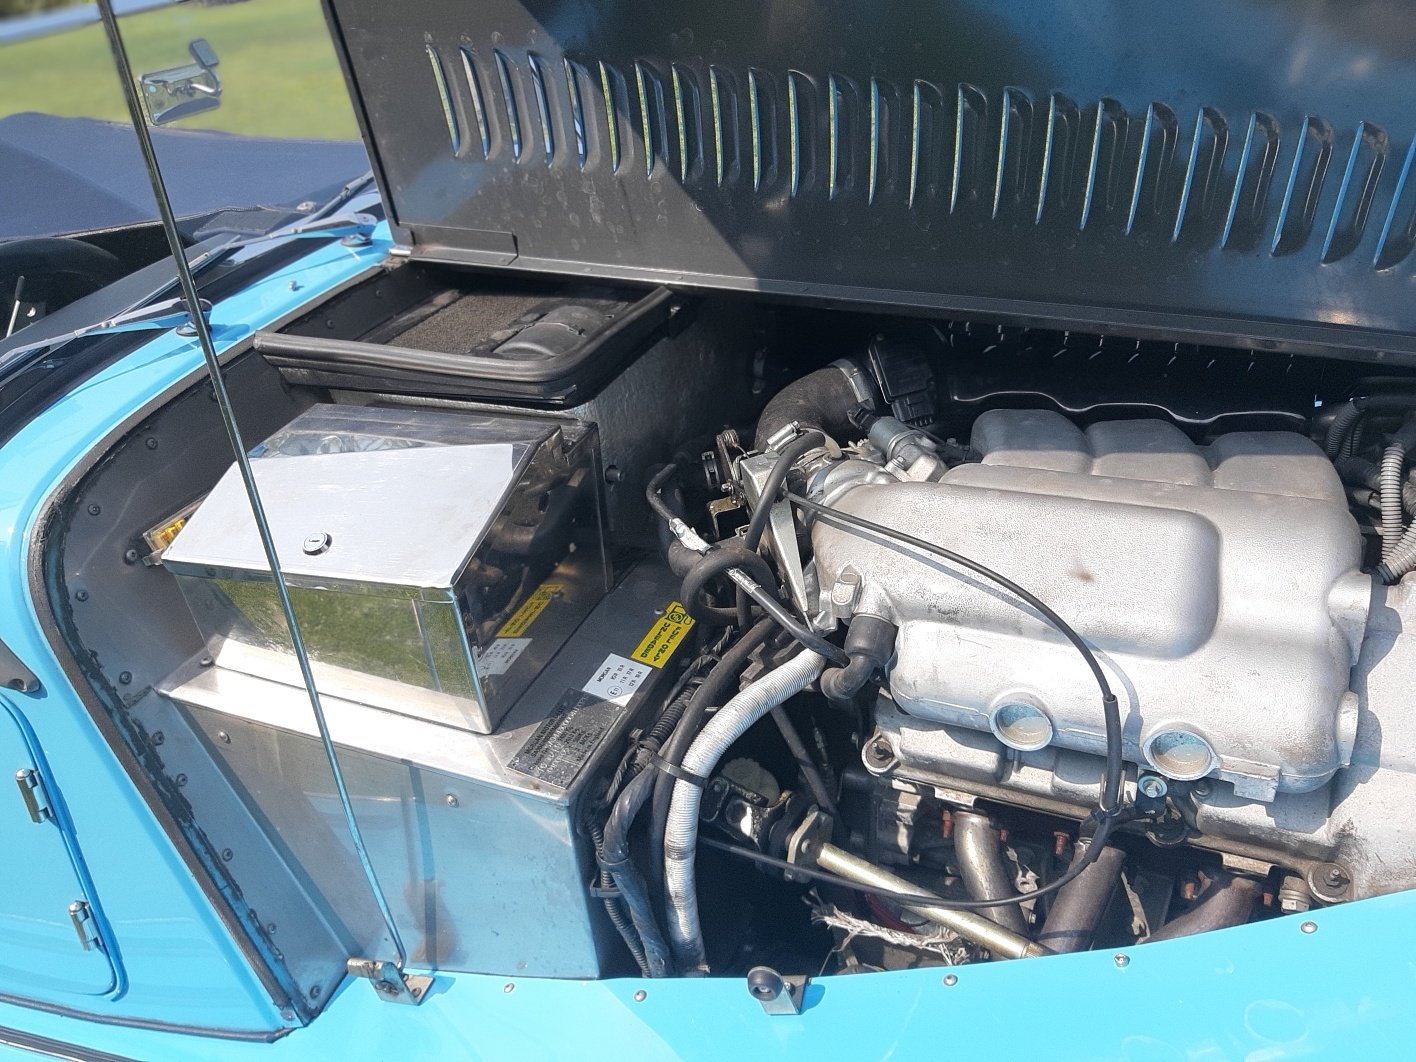 2005 3.0ltr Roadster in fantastic condition For Sale (picture 3 of 6)